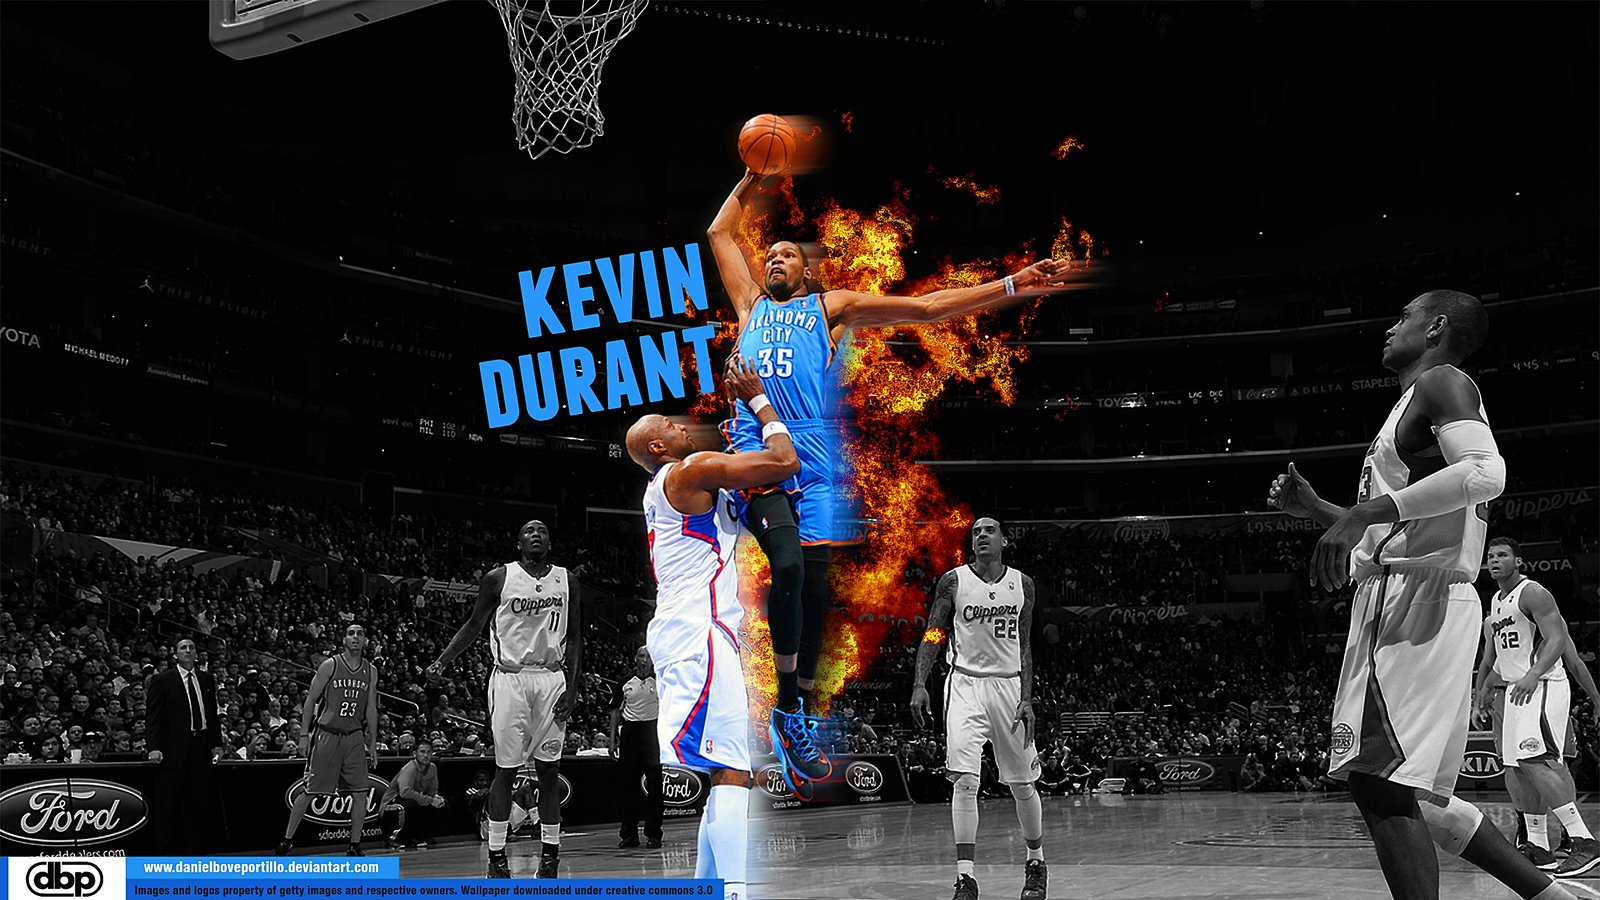 Kevin Durant Dunking HD Wallpaper Sports Wallpapers 1600x900